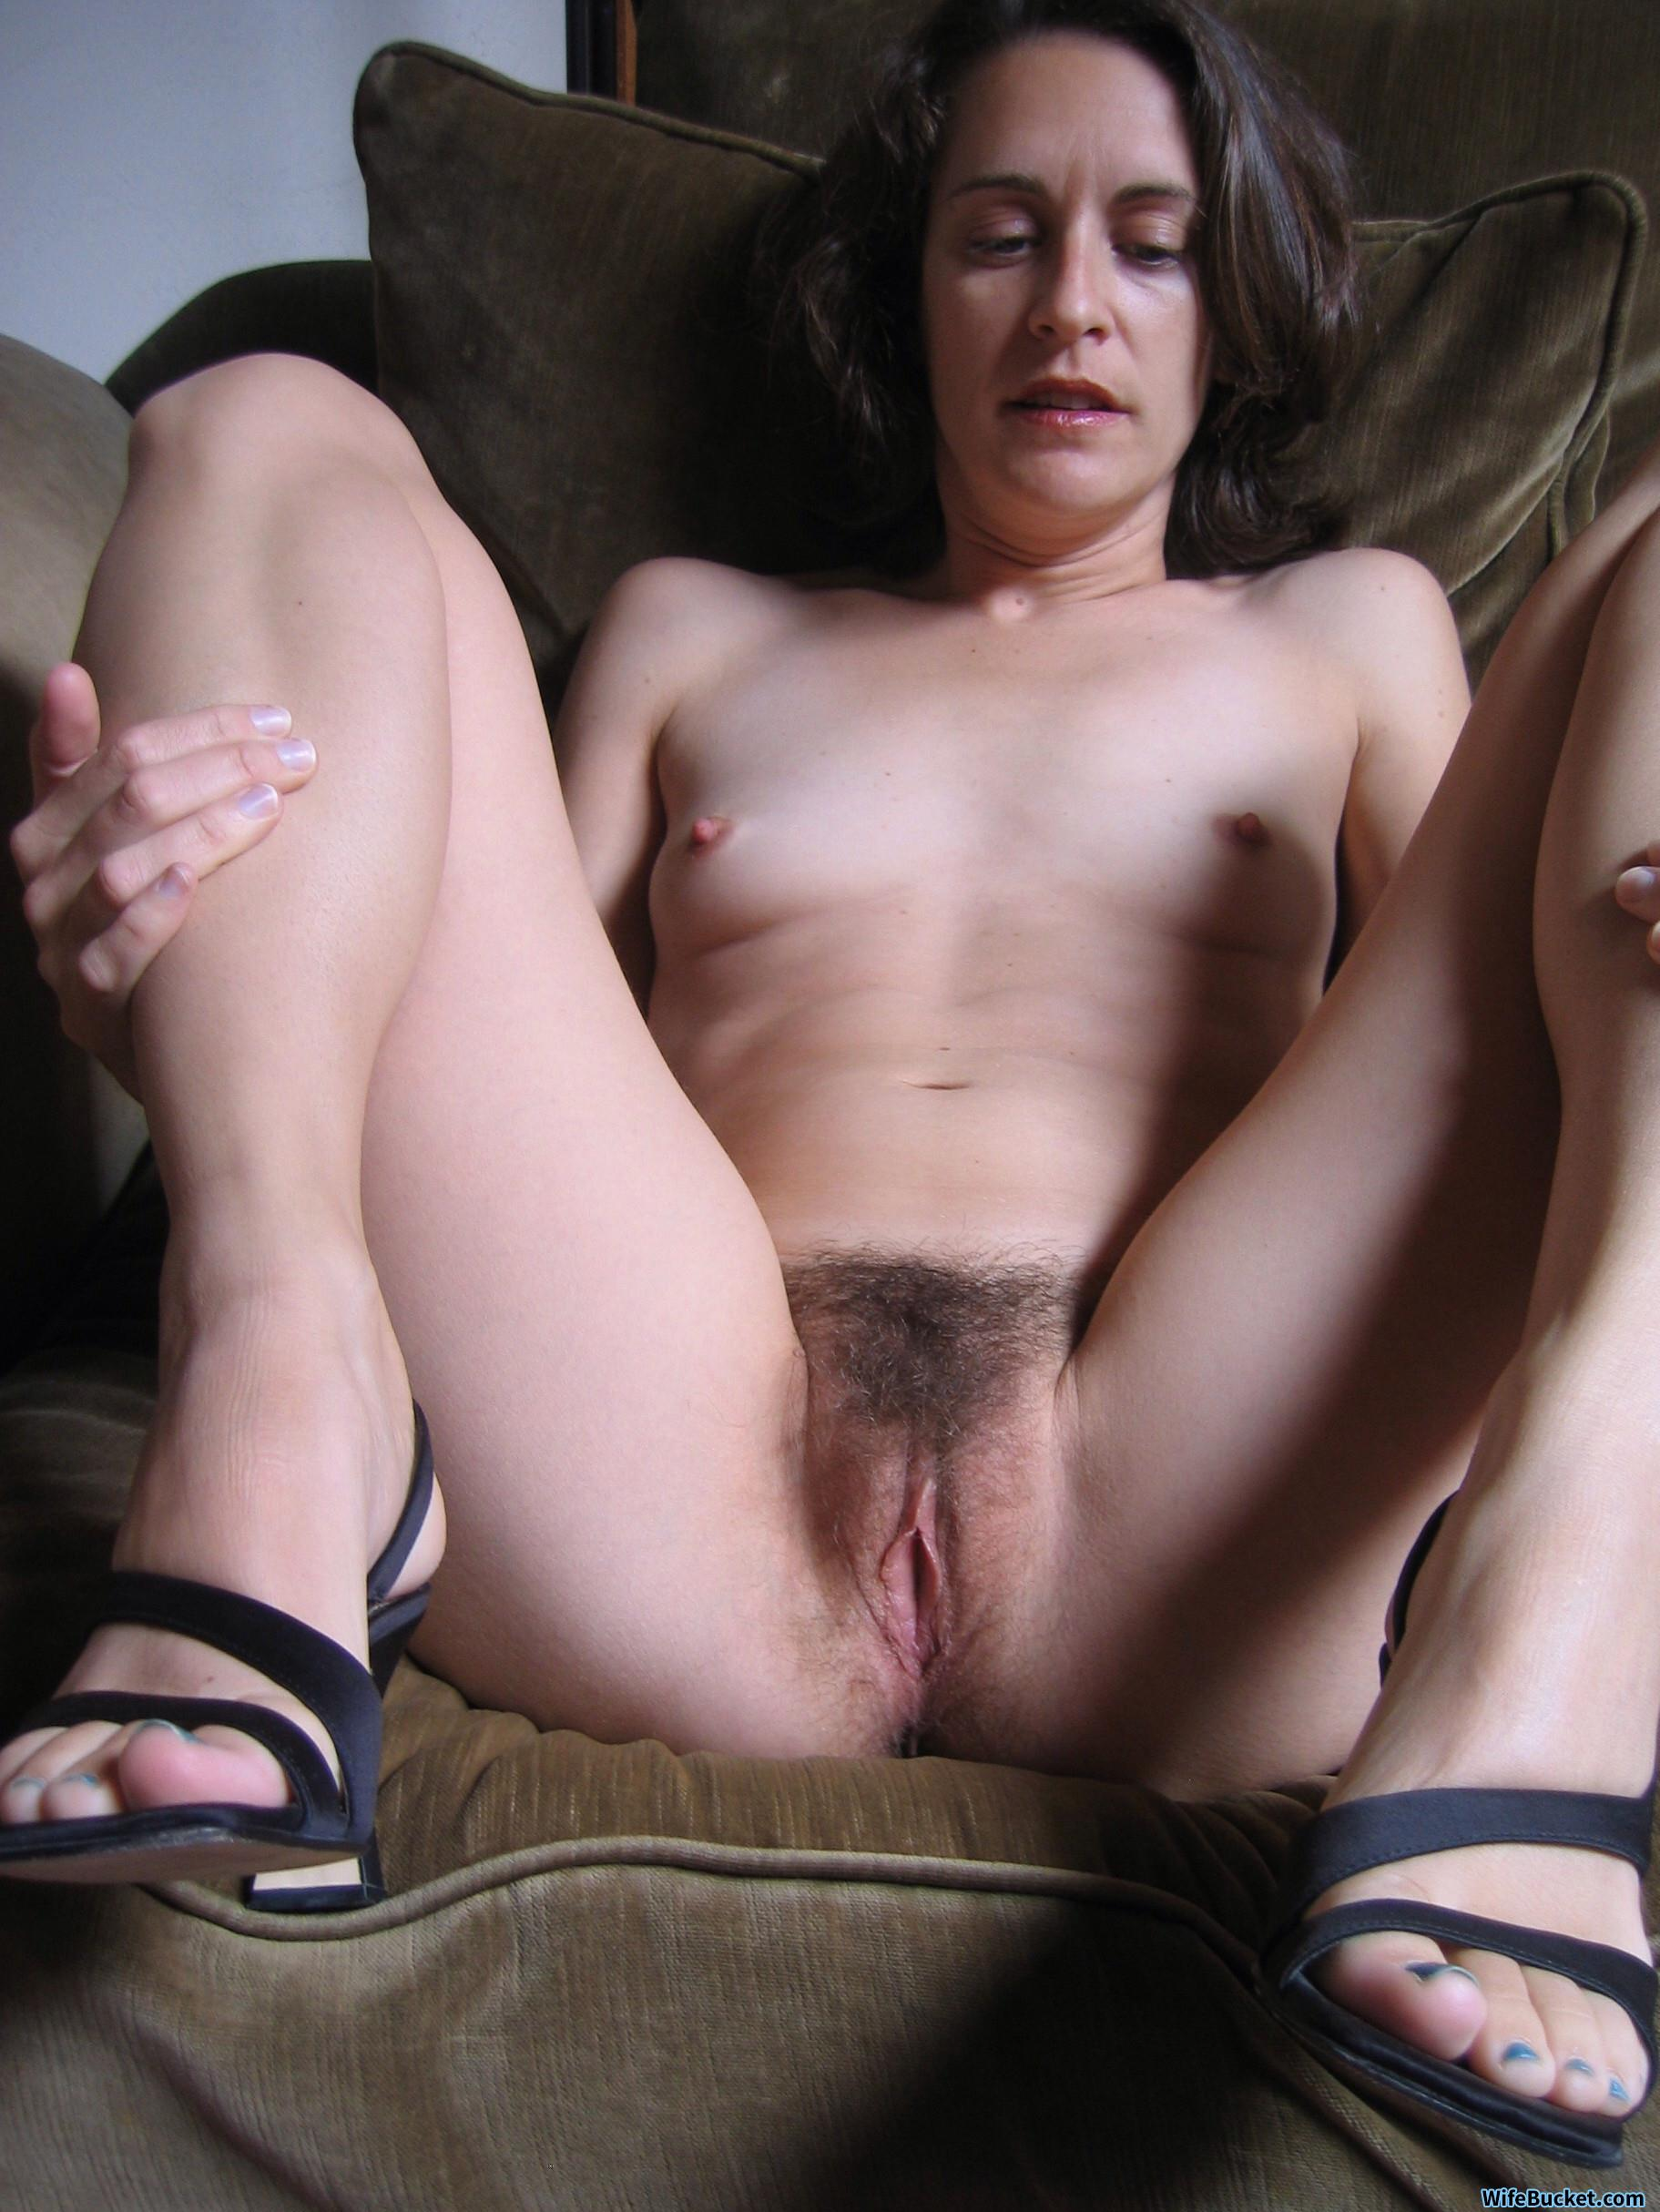 Wifebucket  Offical Milf Blog  Only Real Milfs, Nude -6759